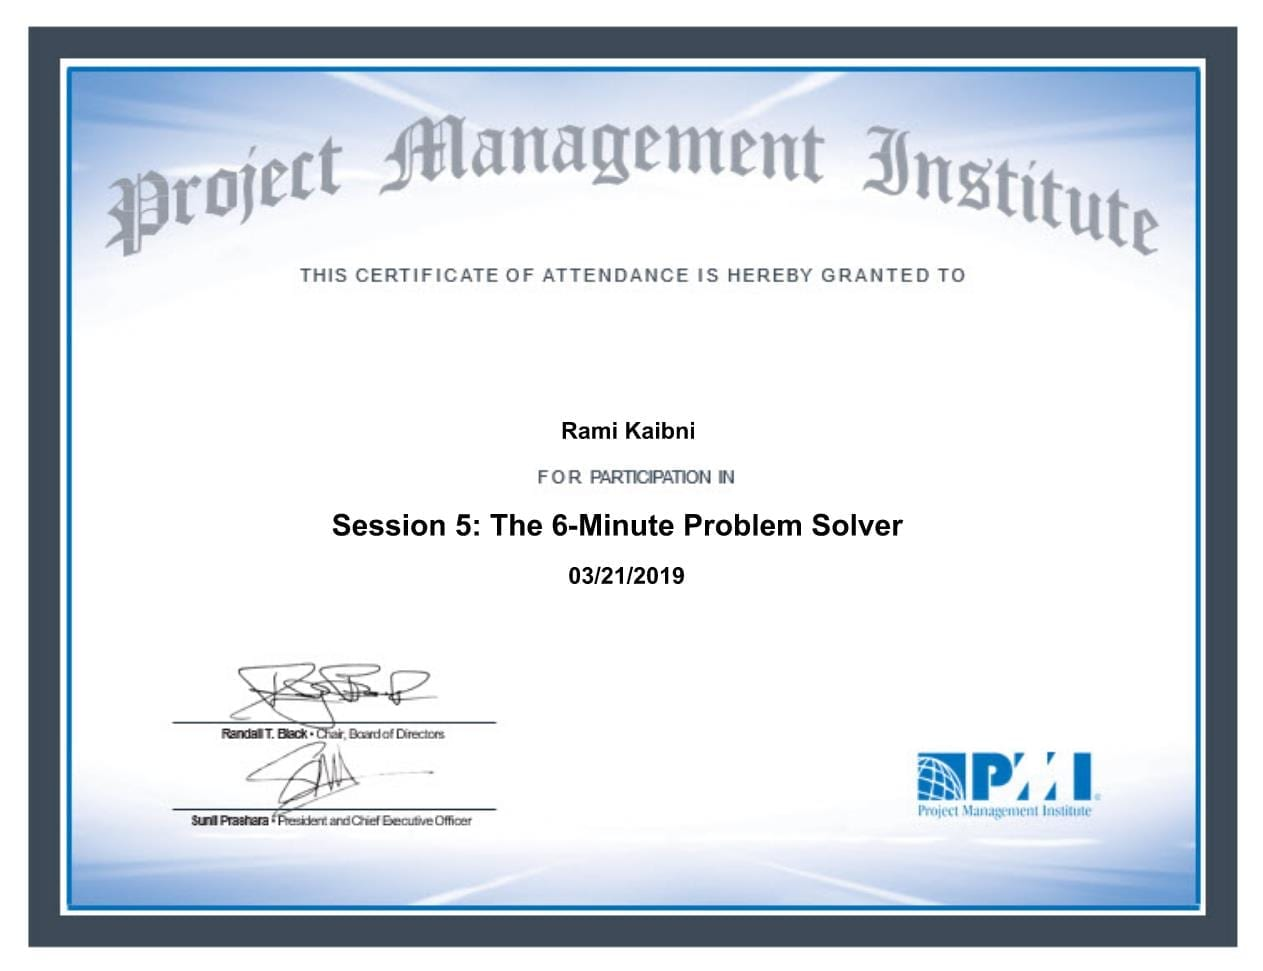 Session 5 - The 6 Minute Problem Solver